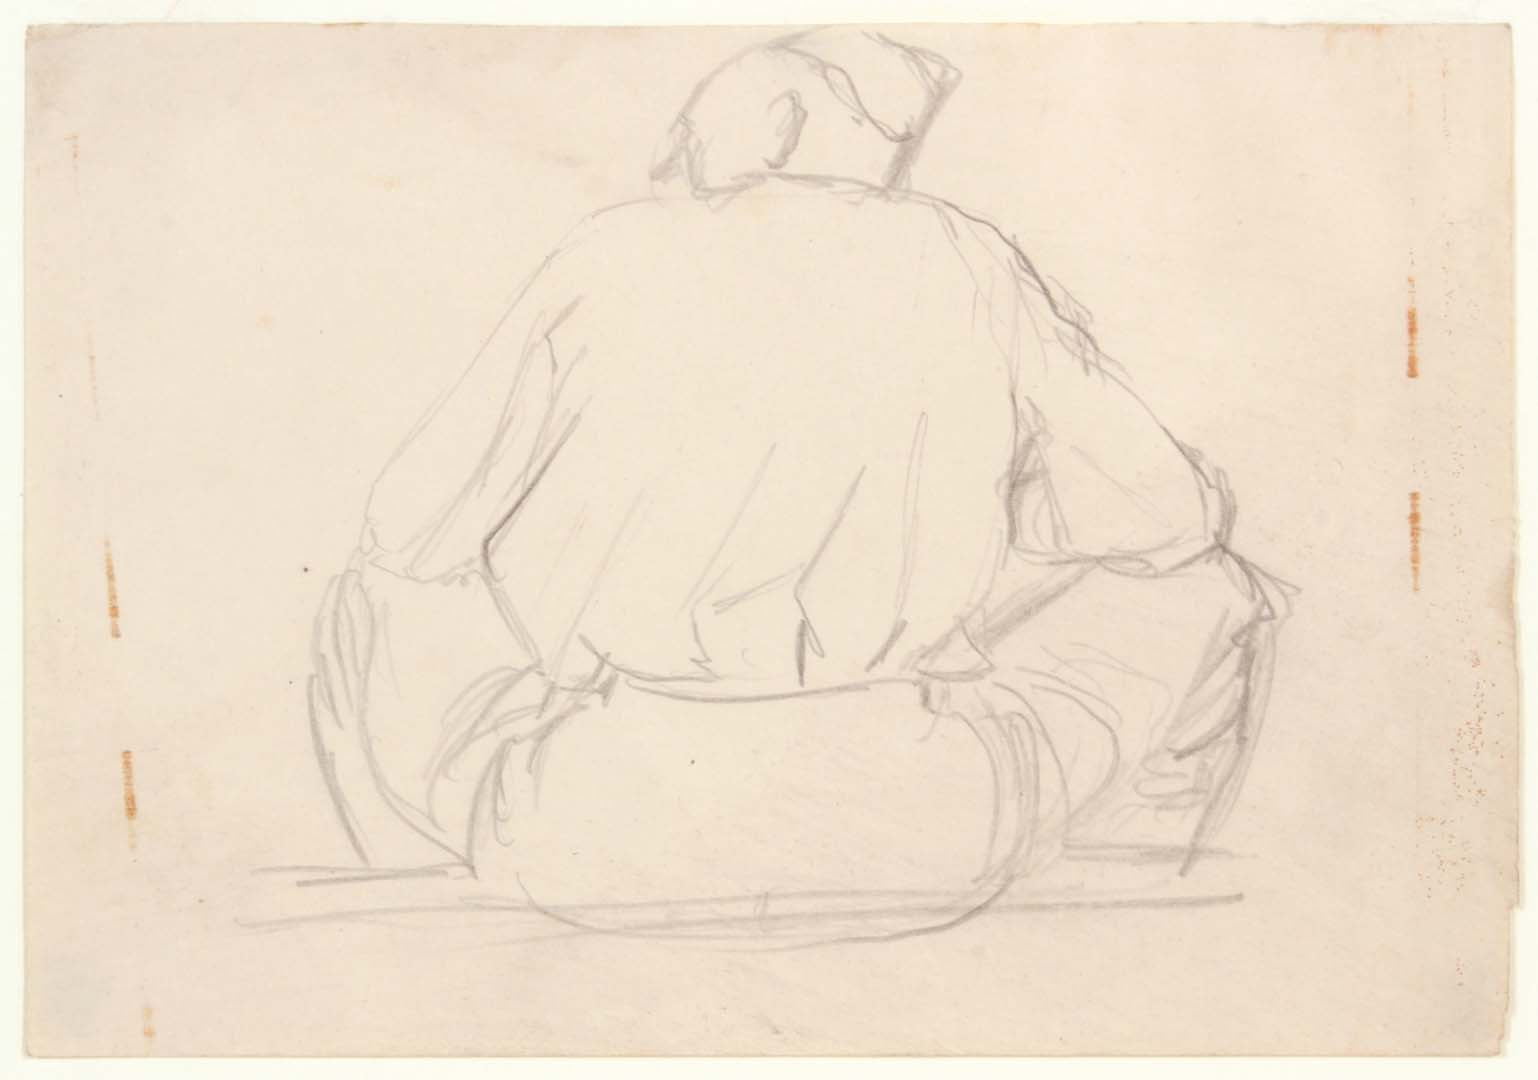 1949 NT (Soldier Lying on His Stomach Holding Bayonette) Graphite on Paper 4.75 x 6.75